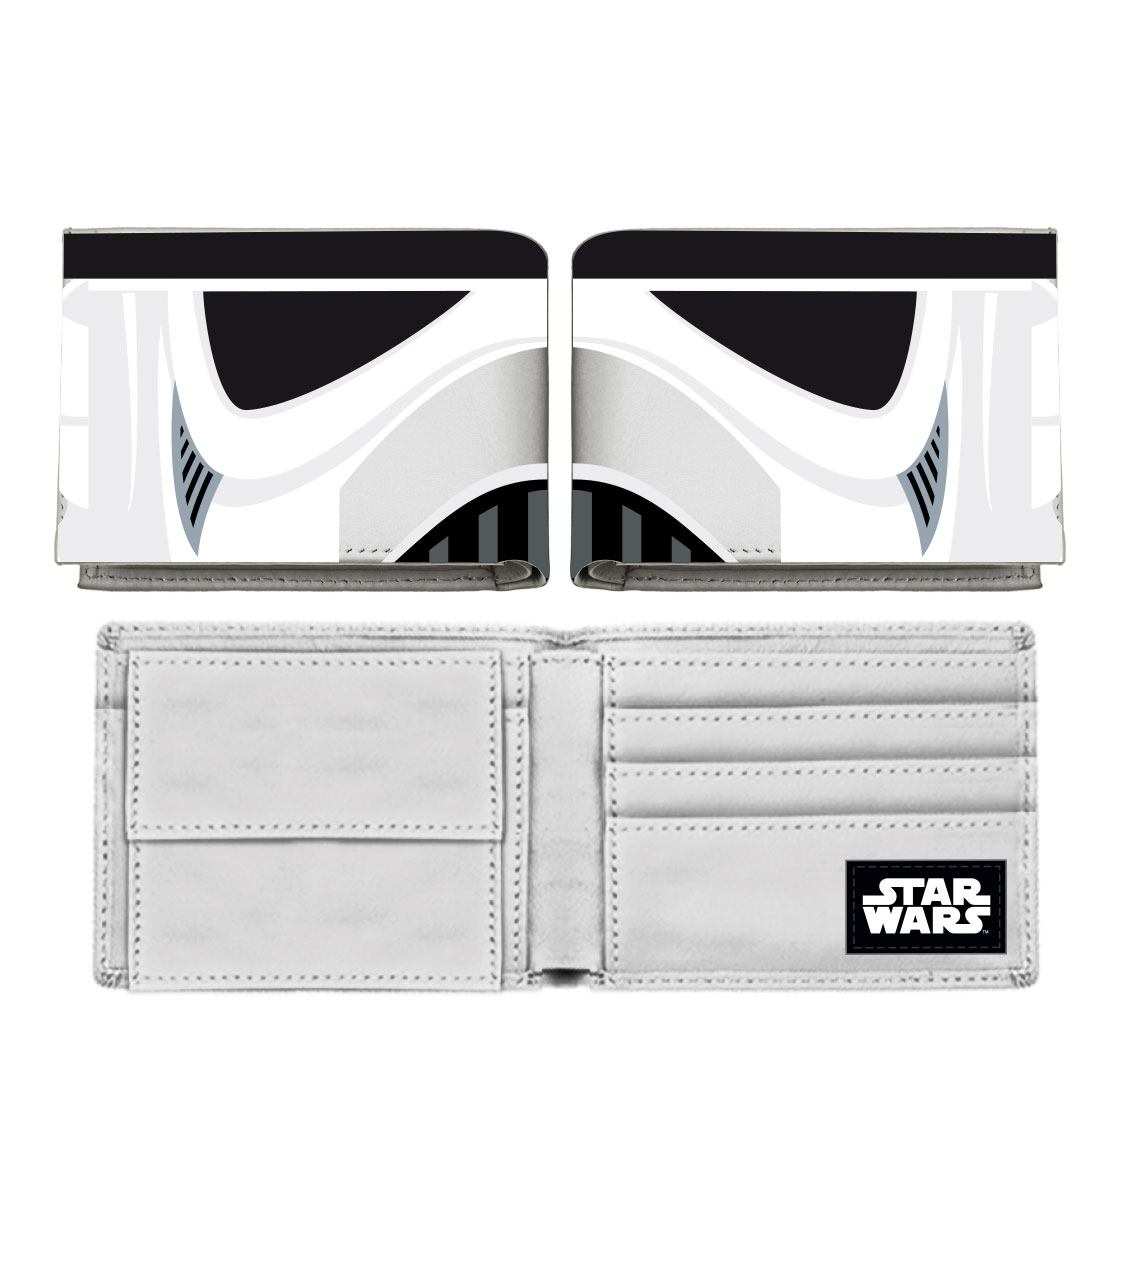 Star Wars Episode VIII Wallet Stormtrooper